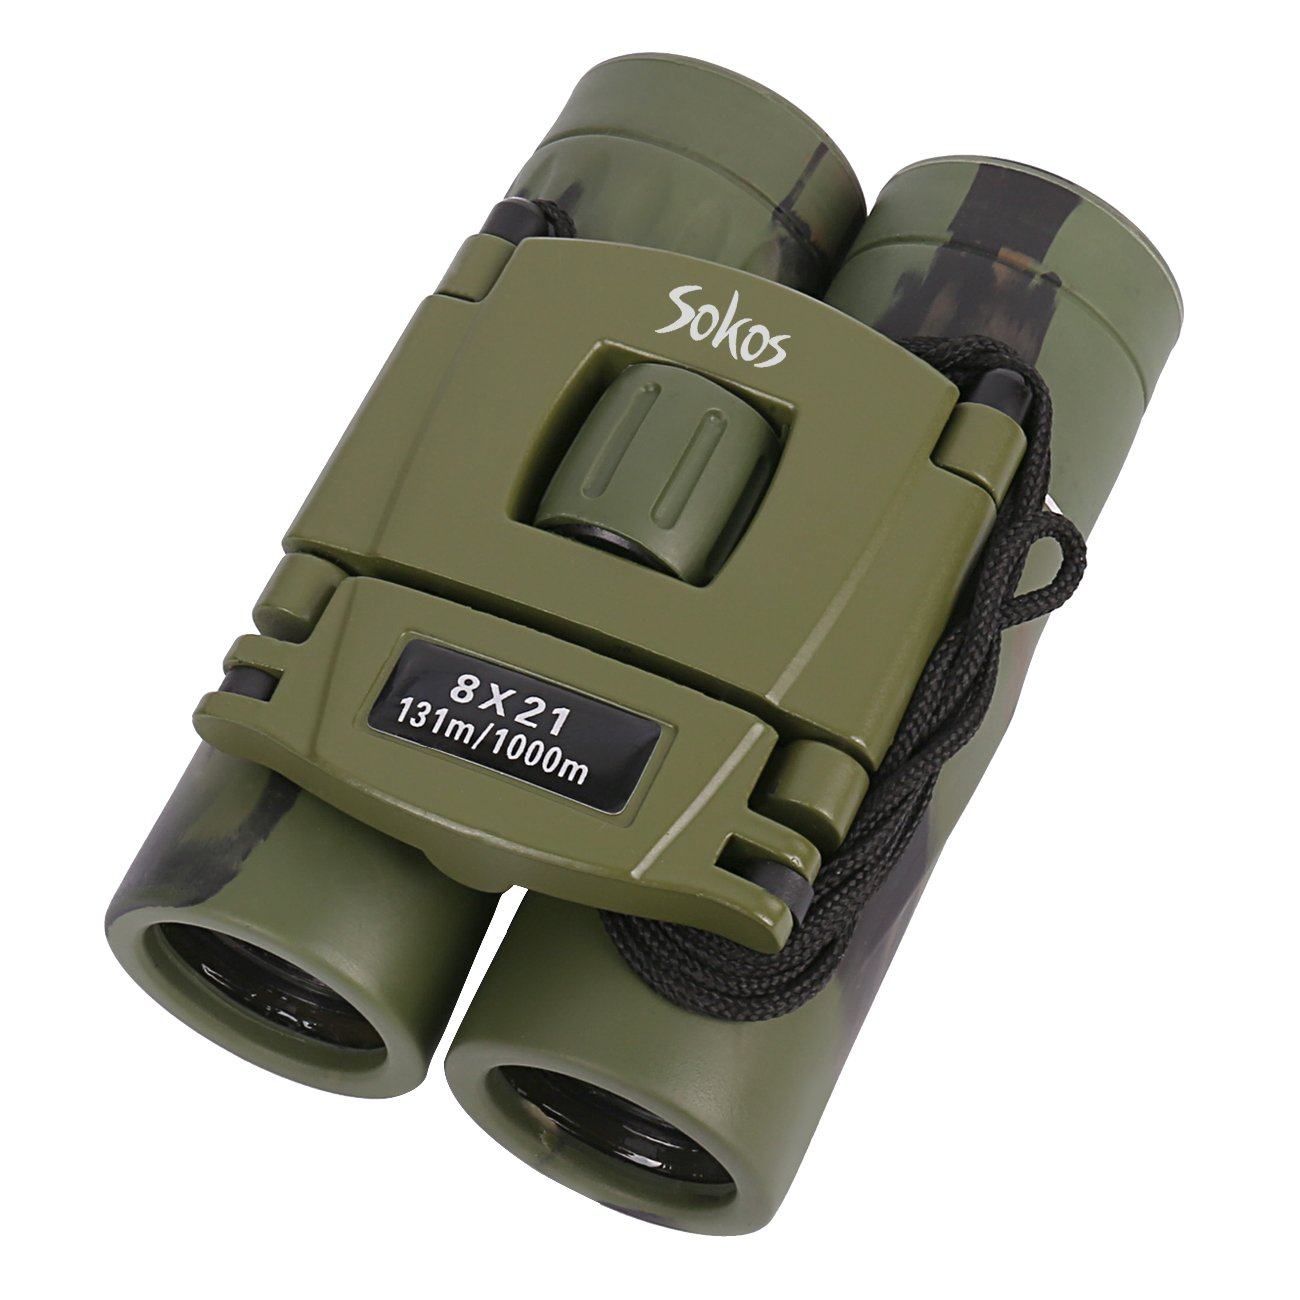 Kids Binoculars, 8x21 Kids Gifts Folding Spotting Telescope Binoculars For Bird Watching, Hiking and Educational Learning, Toys for Boys and Girls